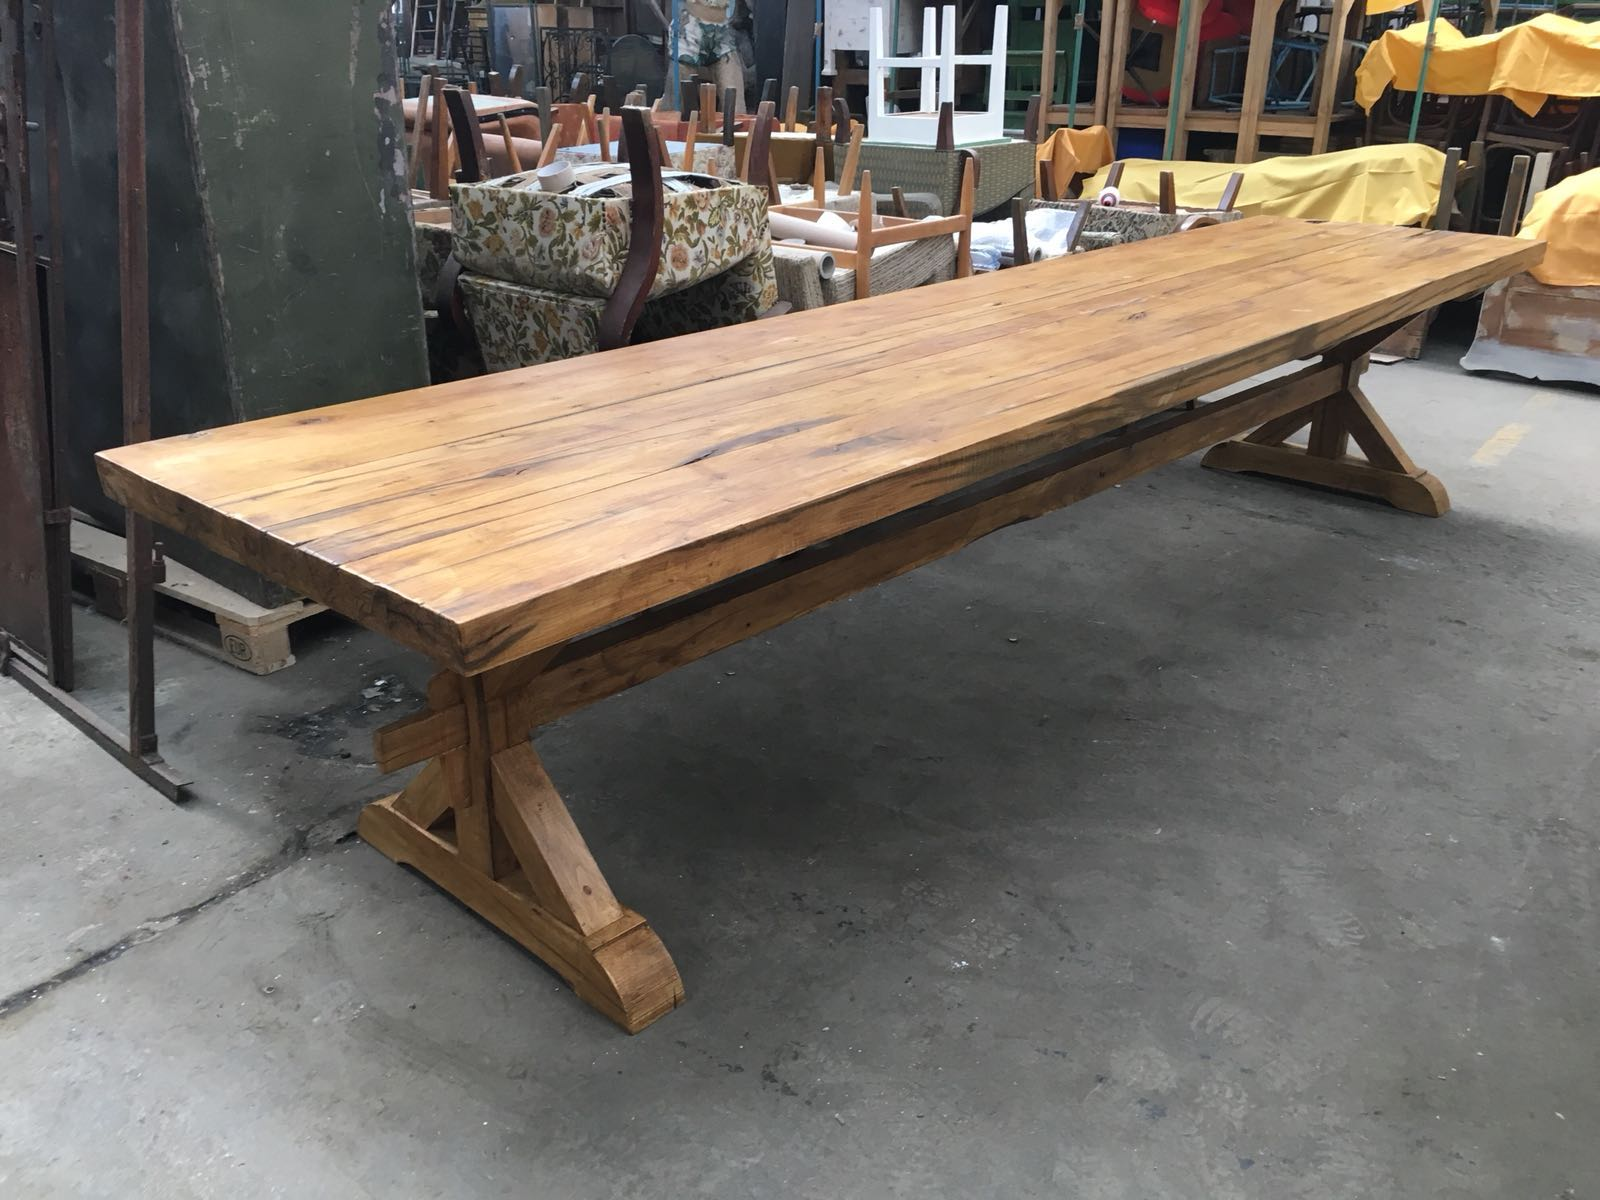 Vintage industrial European OAK FARM kitchen dining table 4 METER #2267